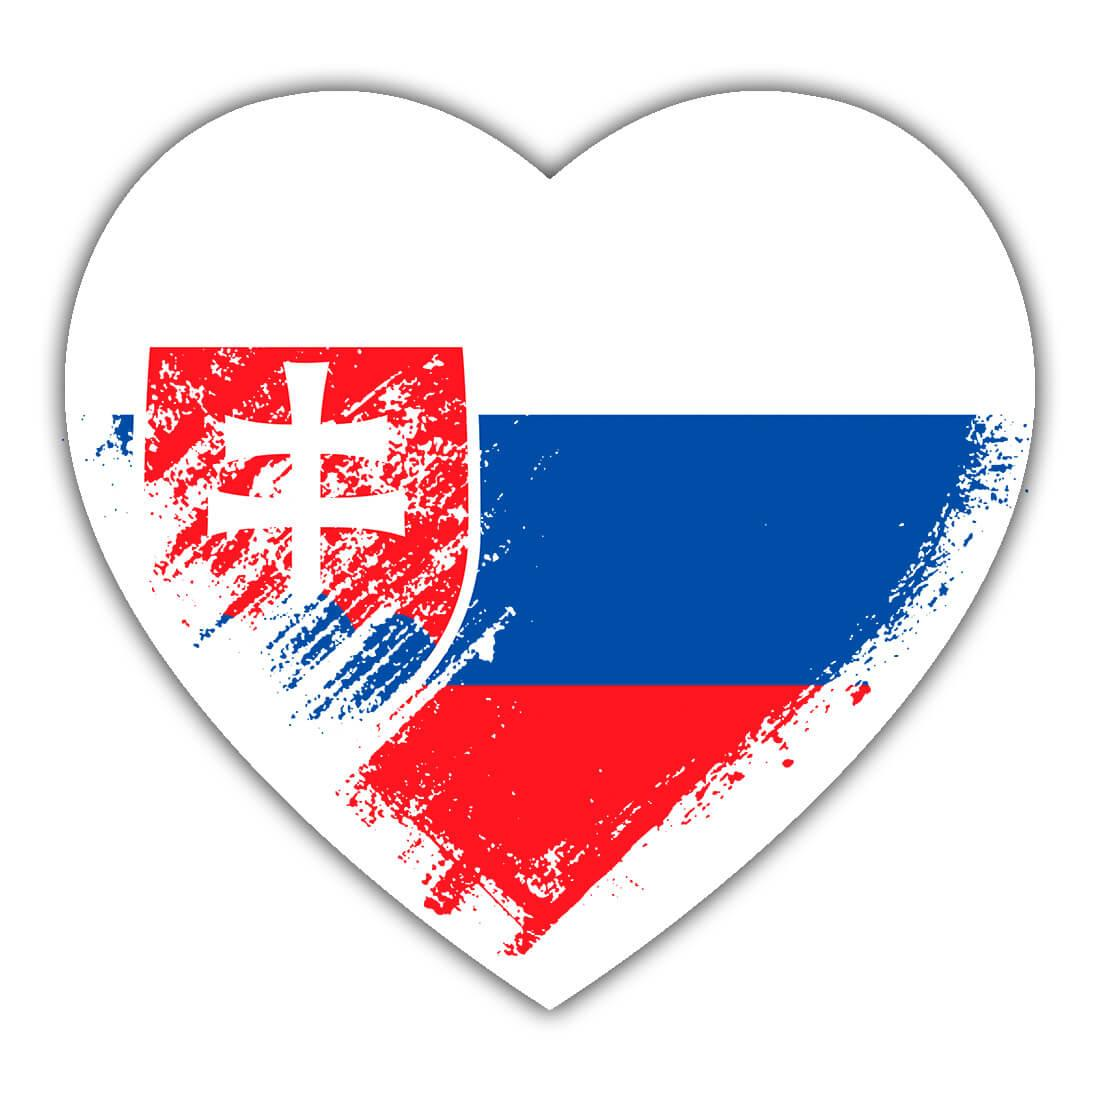 Slovak Heart : Gift Sticker Slovakia Country Expat Flag Patriotic Flags National